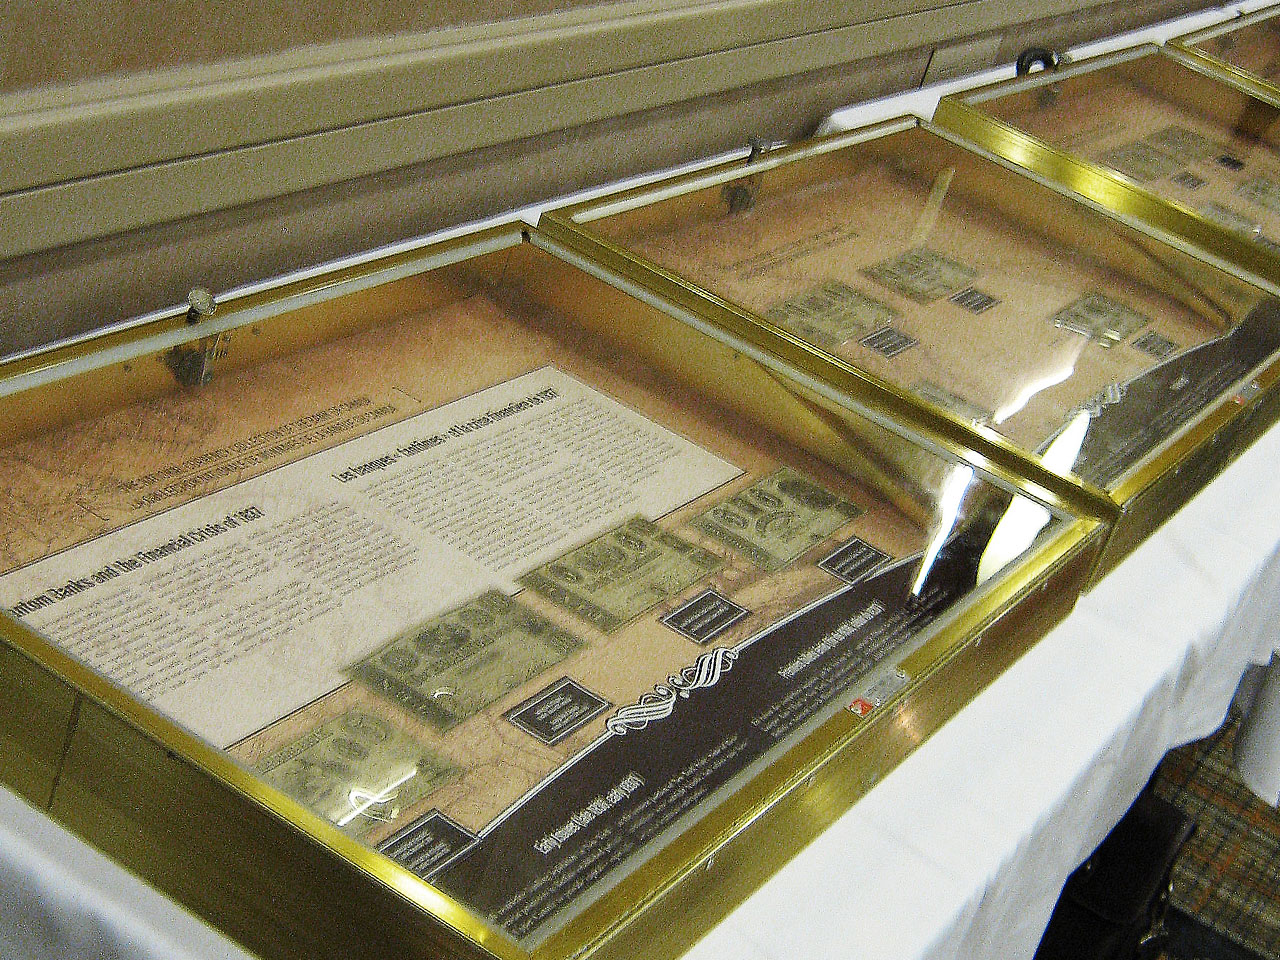 Display cases of bank notes